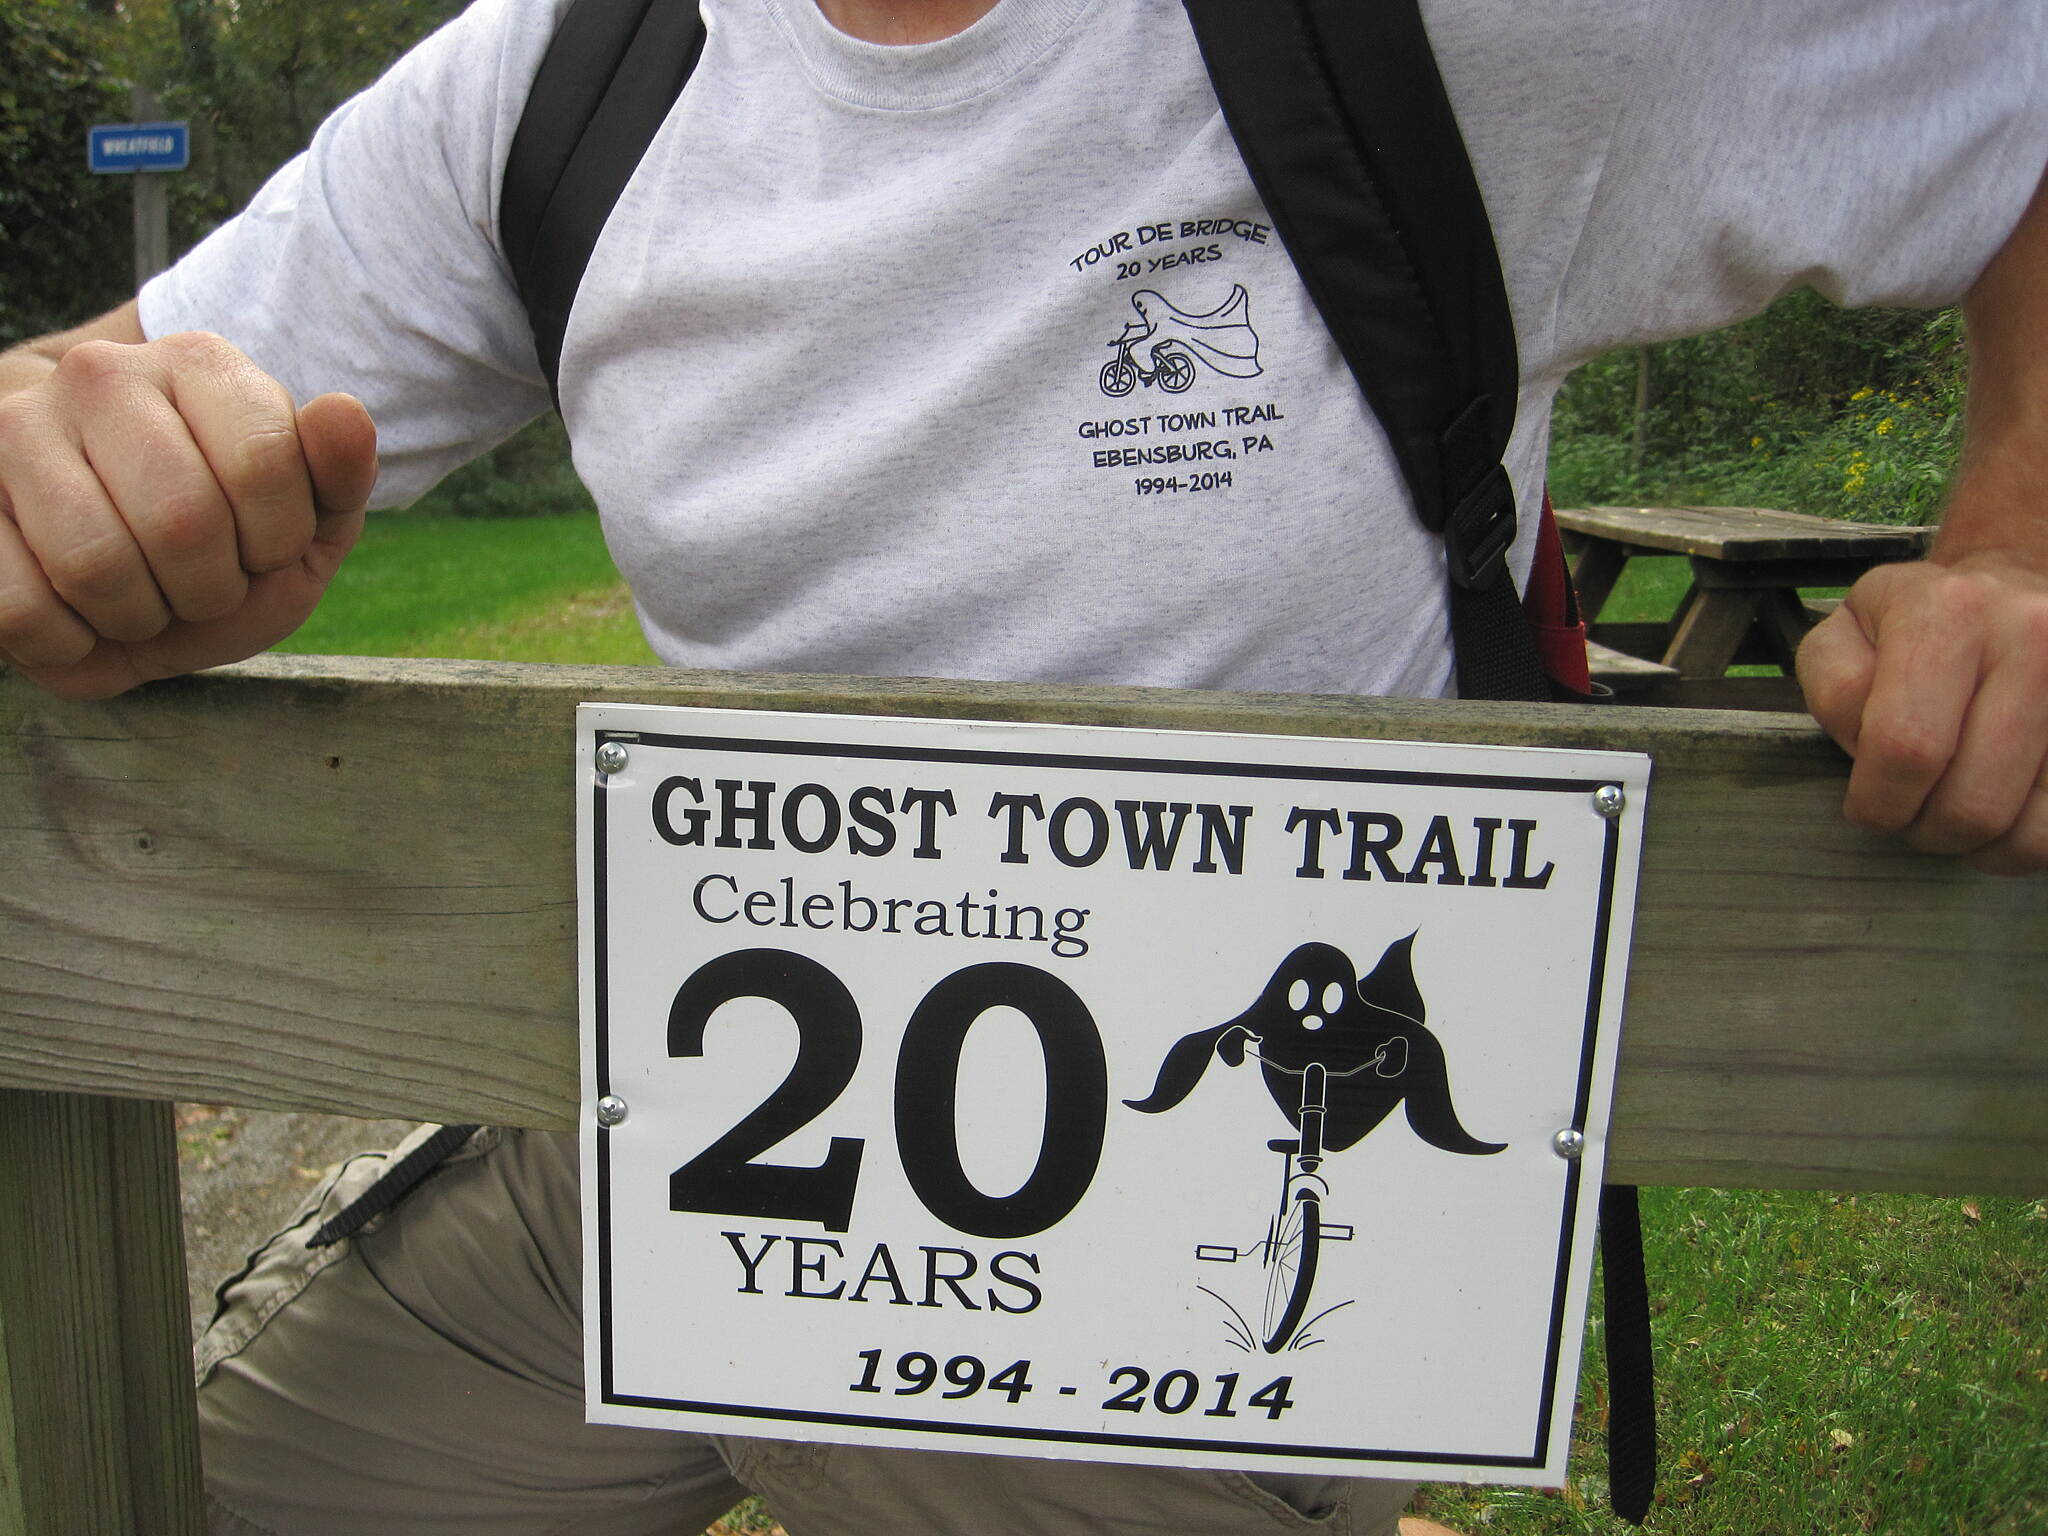 Ghost Town Trail Commemorative T-shirts Our family t-shirt design for our ride on the Ghost Town Trail was eerily similar to the commemoratory plague marking the 20th anniversary of the trail.